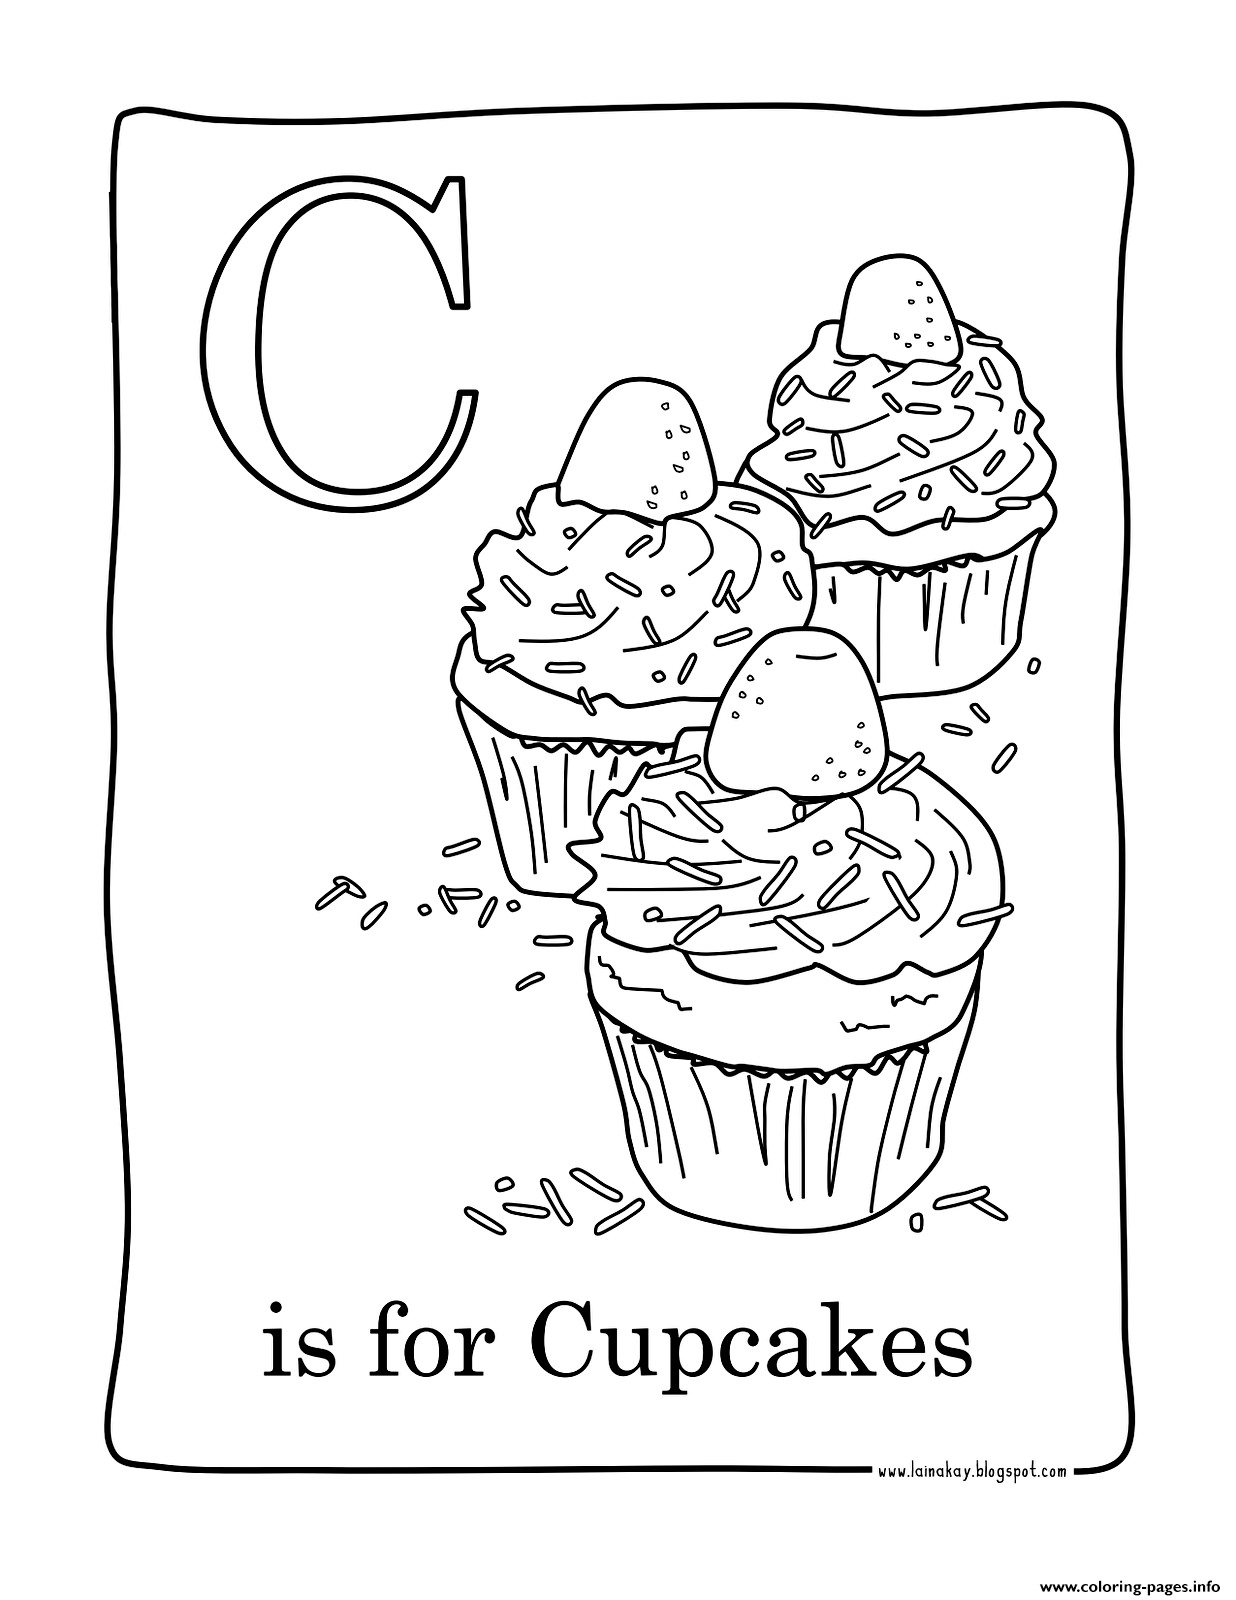 Facile Cupcakes coloring pages